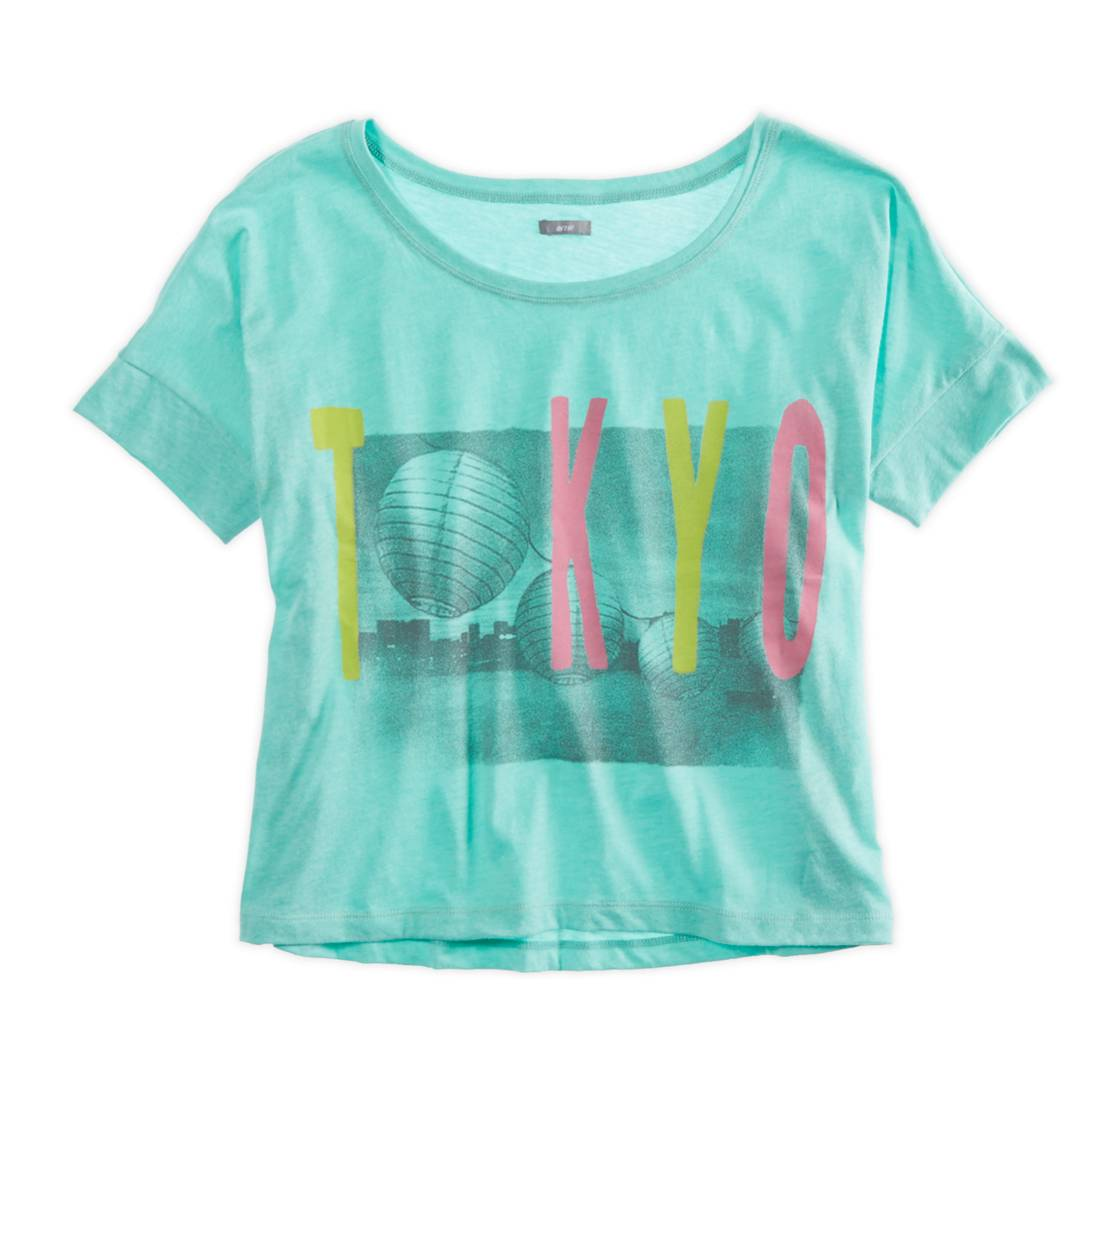 Lookbook Green Aerie Favorite Cities Graphic Crop T-Shirt